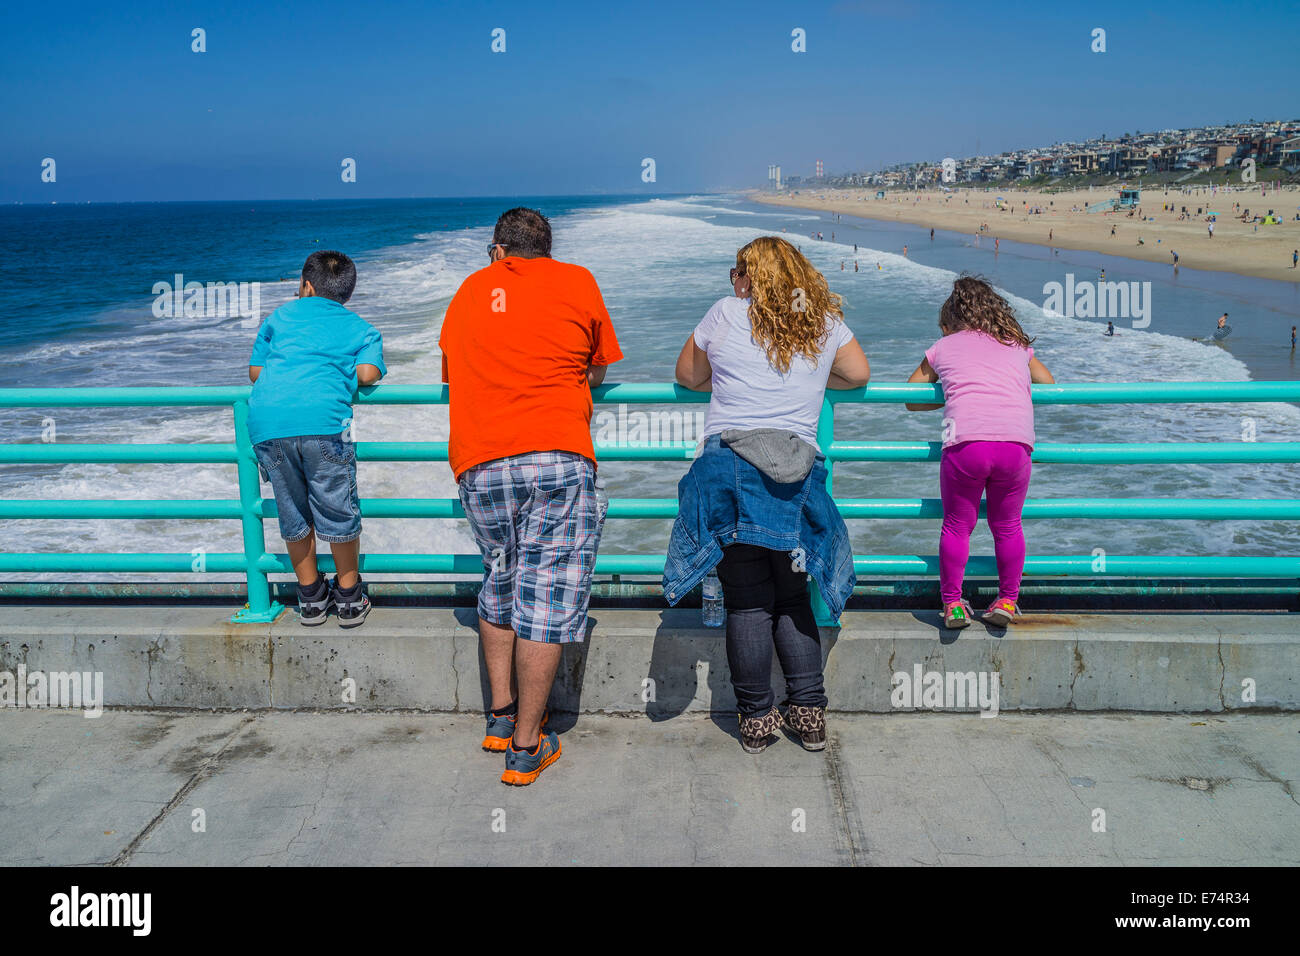 A vacationing family leans on the railing at the Manhattan Beach municipal pier and look out to sea. - Stock Image